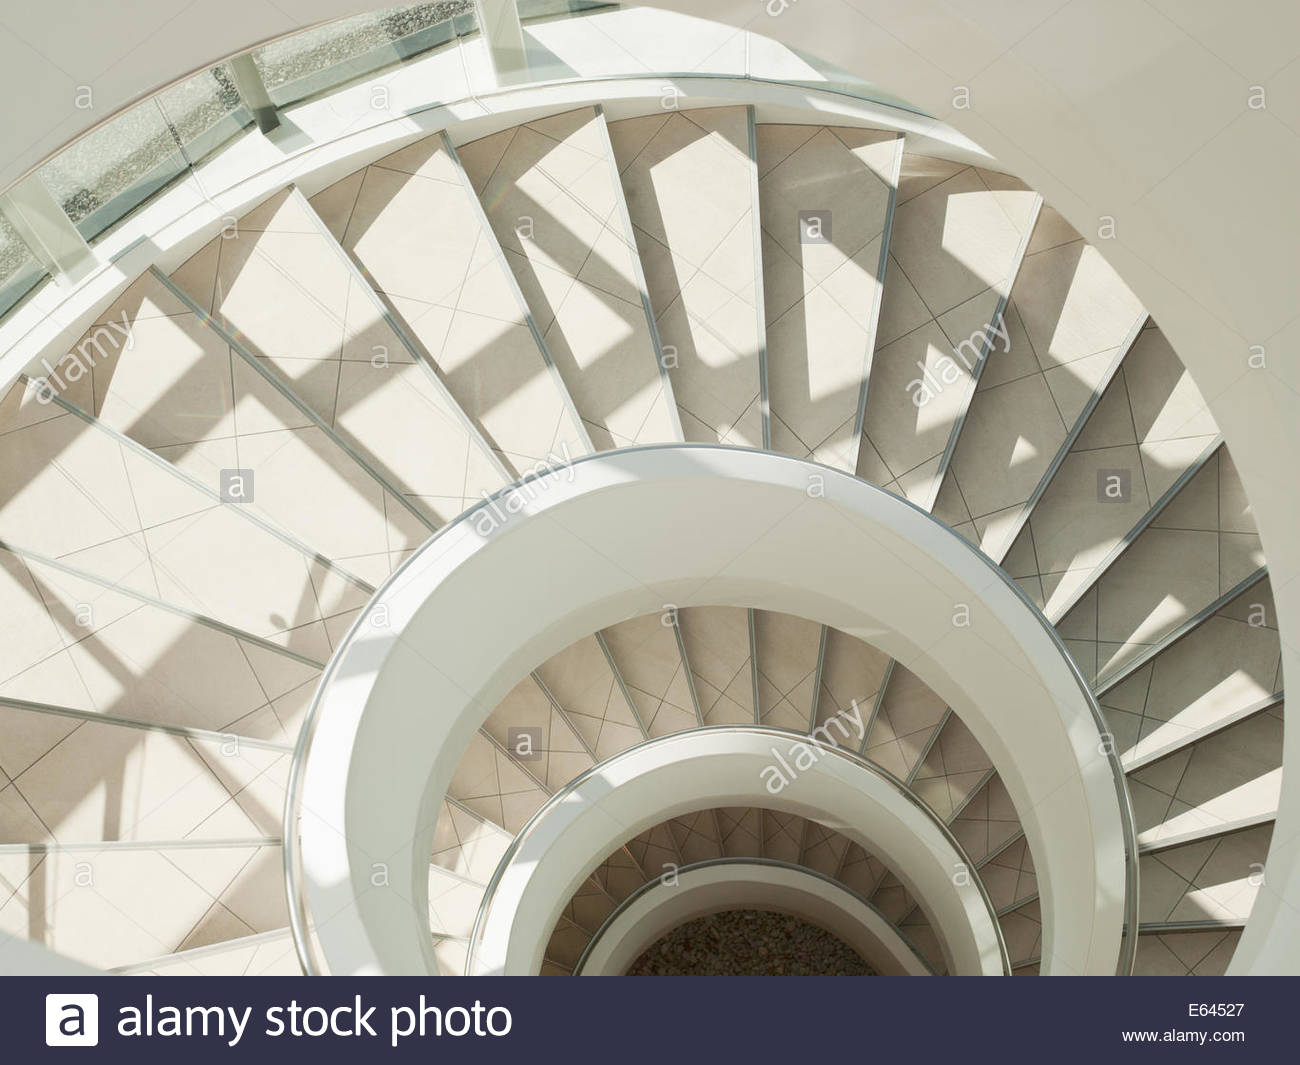 Stairway in office building - Stock Image